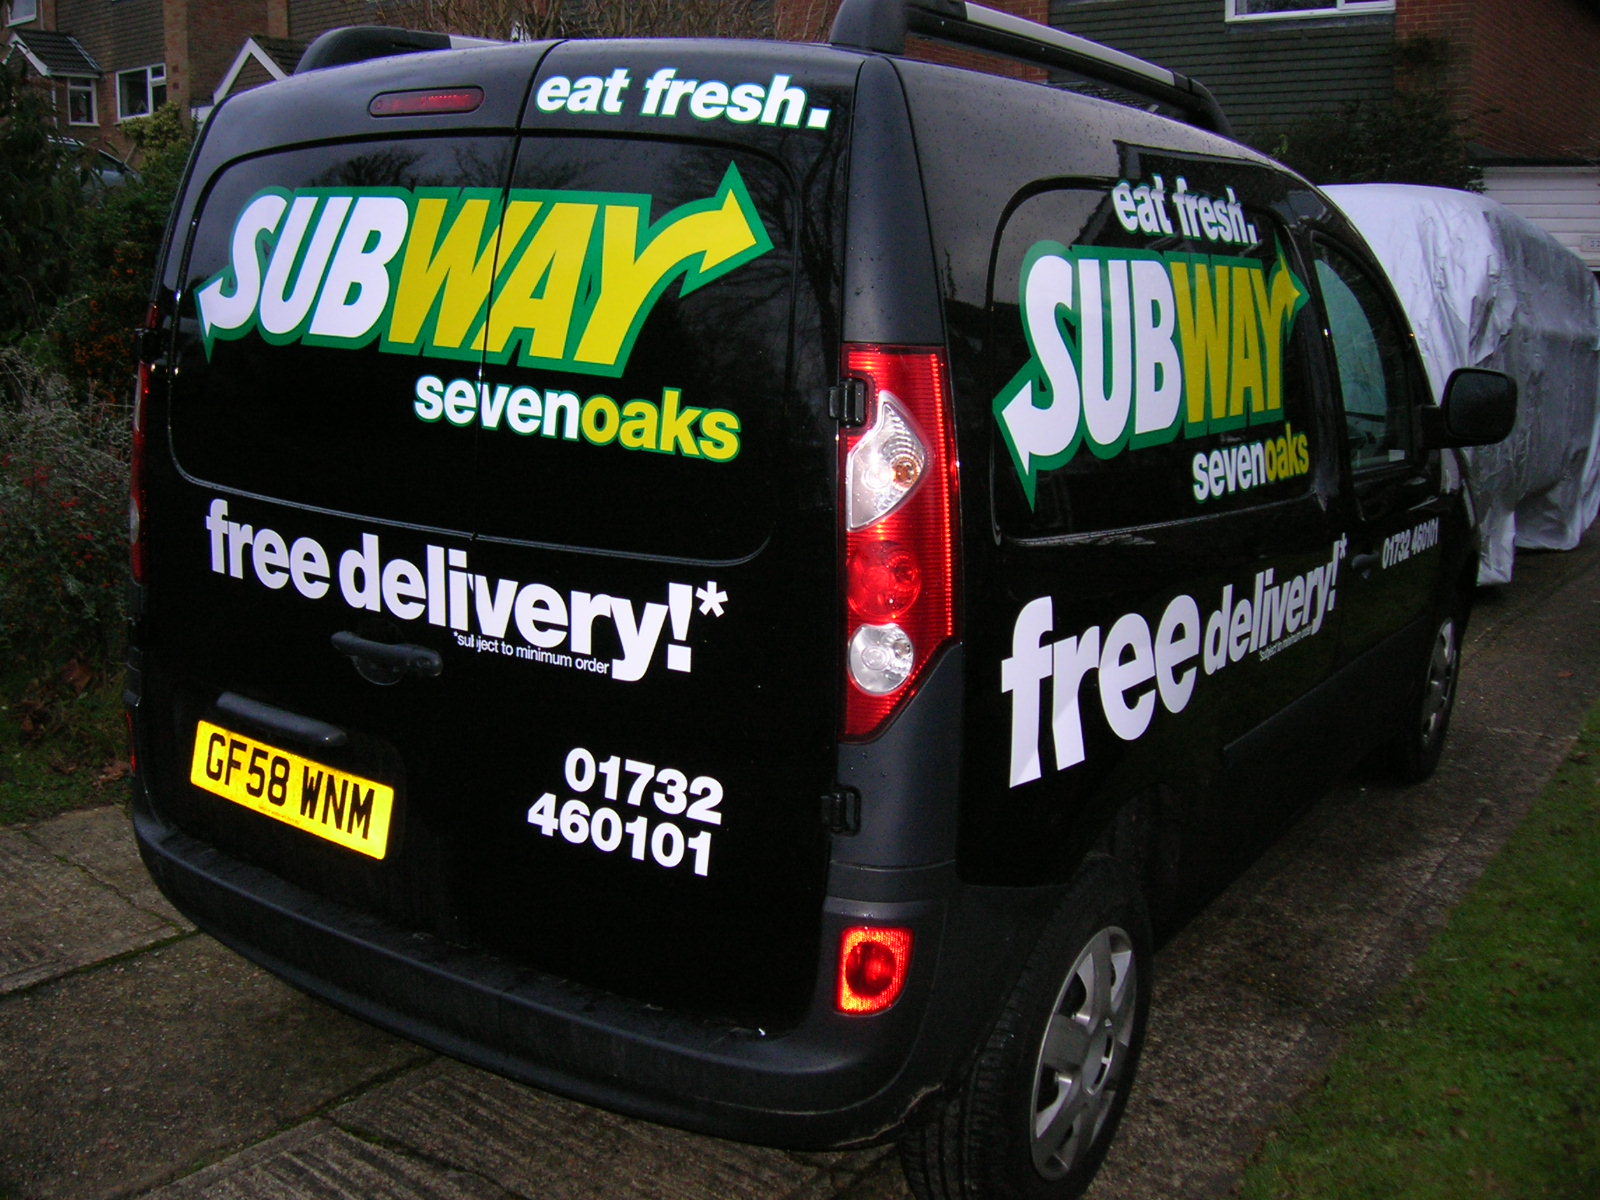 Subway van